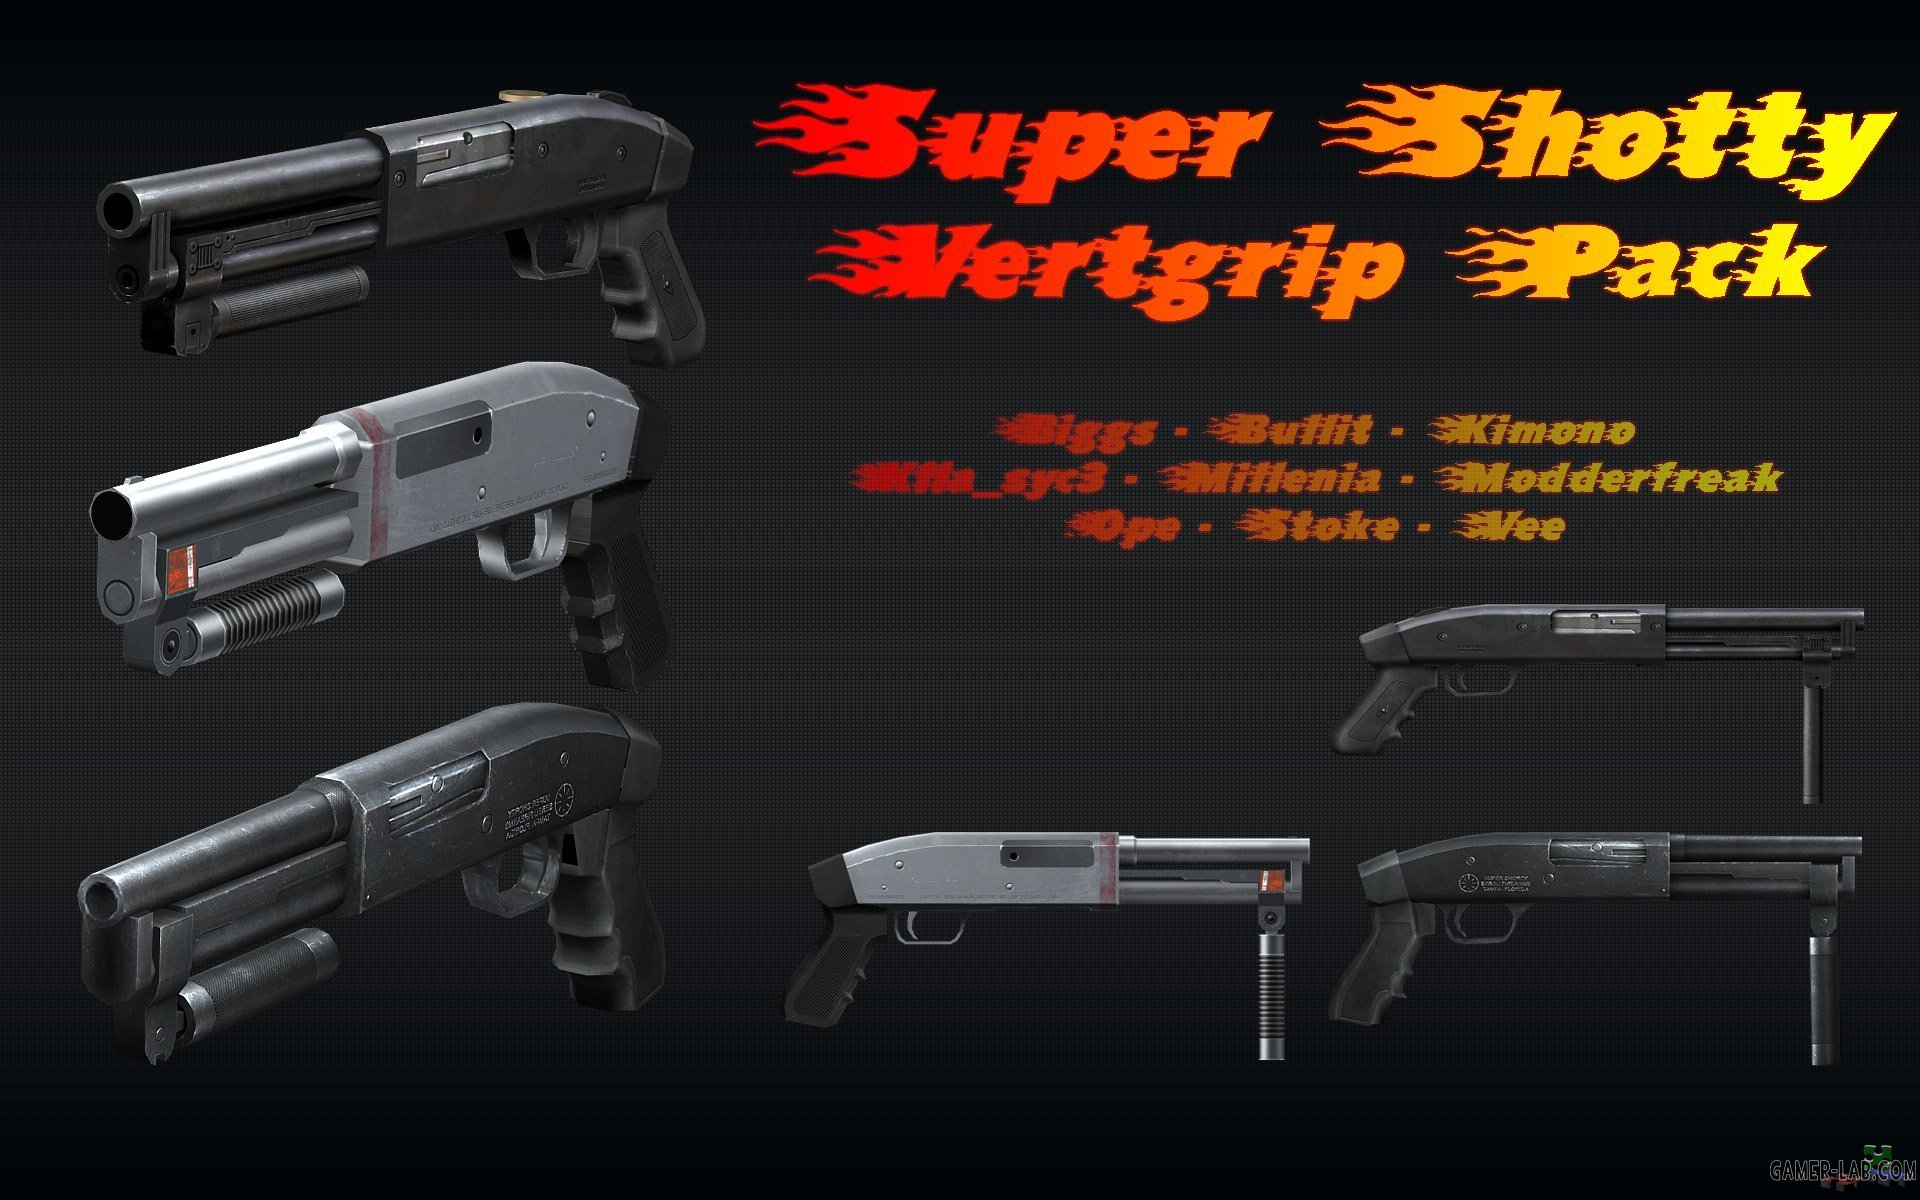 Super Shotty Vertgrip Pack